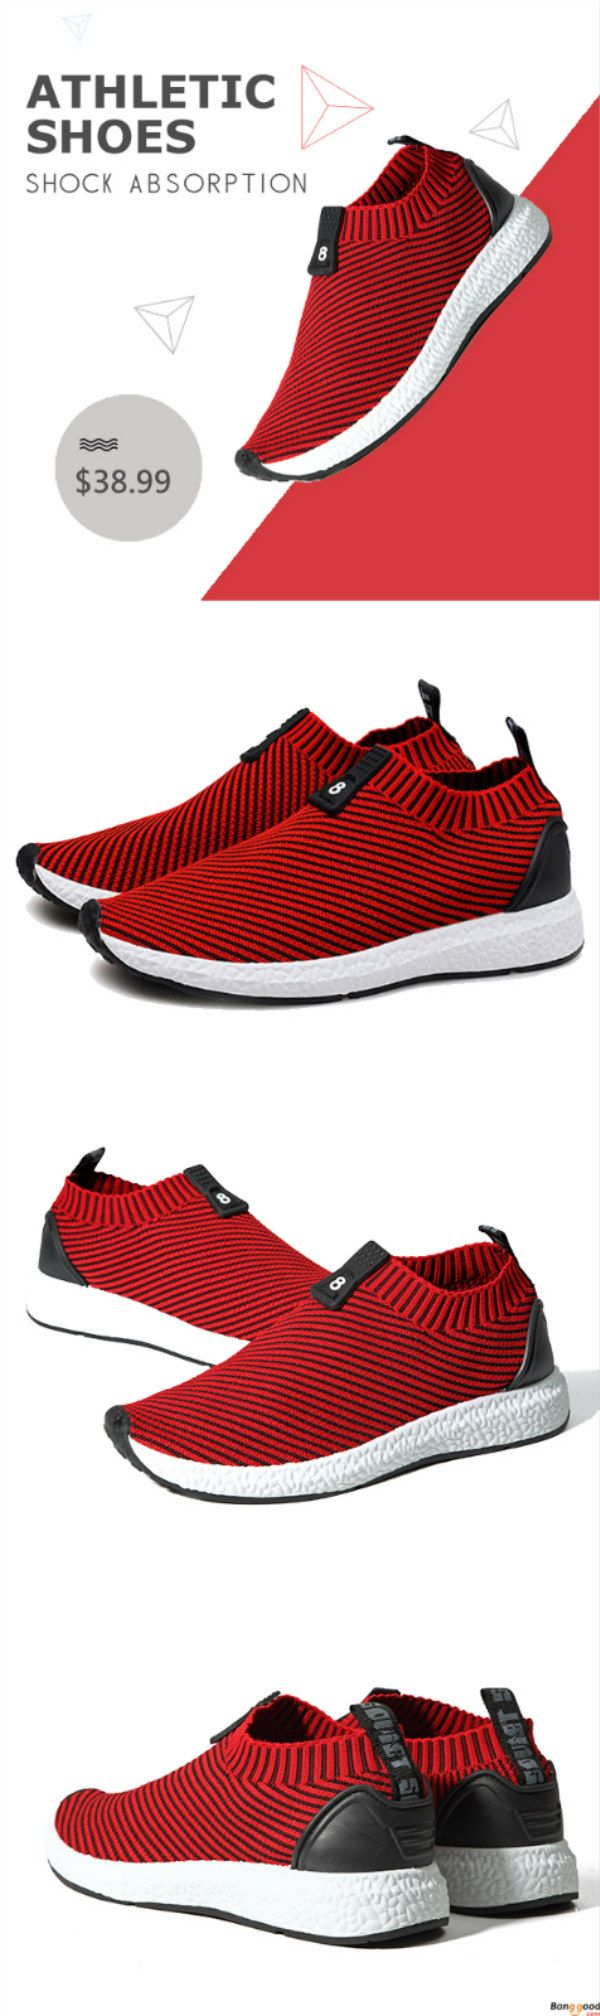 US$38.99+ Free Shipping. 4 colors available. Men slip on, casual comfortable shoes,  sneakers, athletic shoes. Fashion and chic, casual shoes, men's sneakers,flats, slip on,  men's style, chic style, fashion style. Shop at banggood with super affordable price. #men'sshoes#men'sstyle#chic#style#fashion#style#wintershoes#casual#shoes#casualshoes#sneakers#athleticshoes#slipon#workout#gym